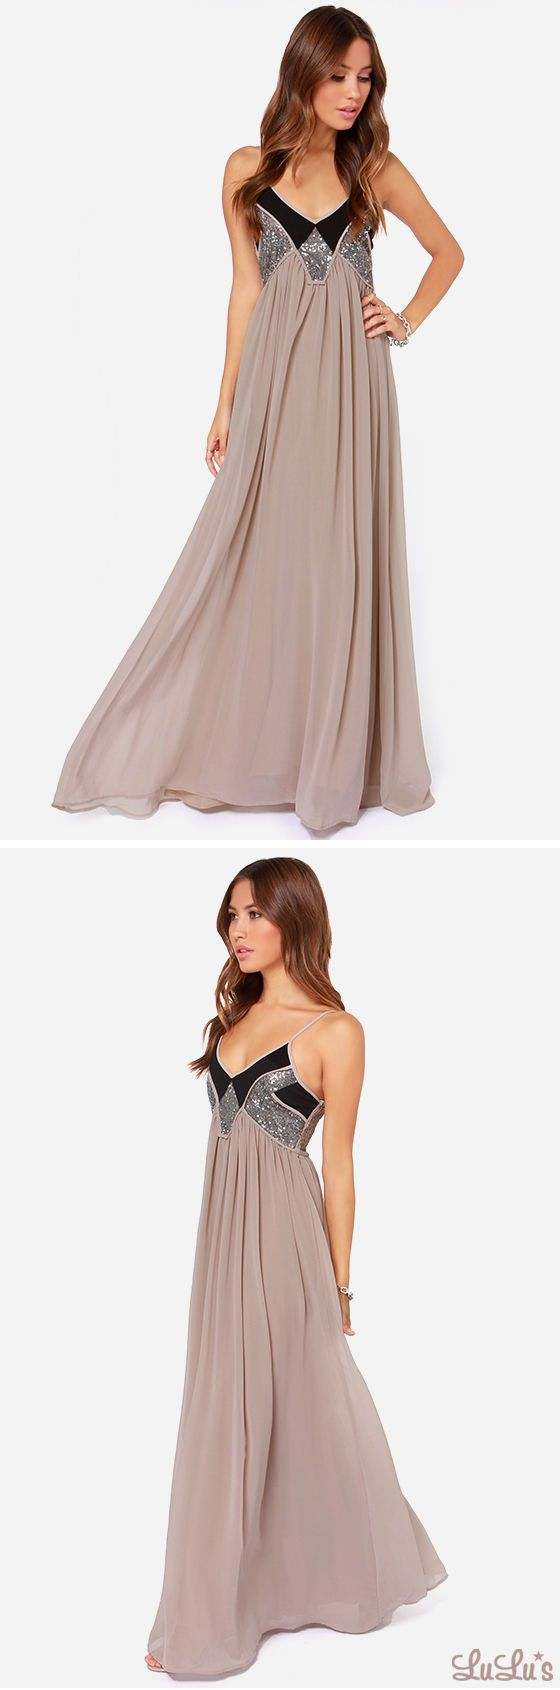 Top Of The World Taupe Sequin Maxi Dress